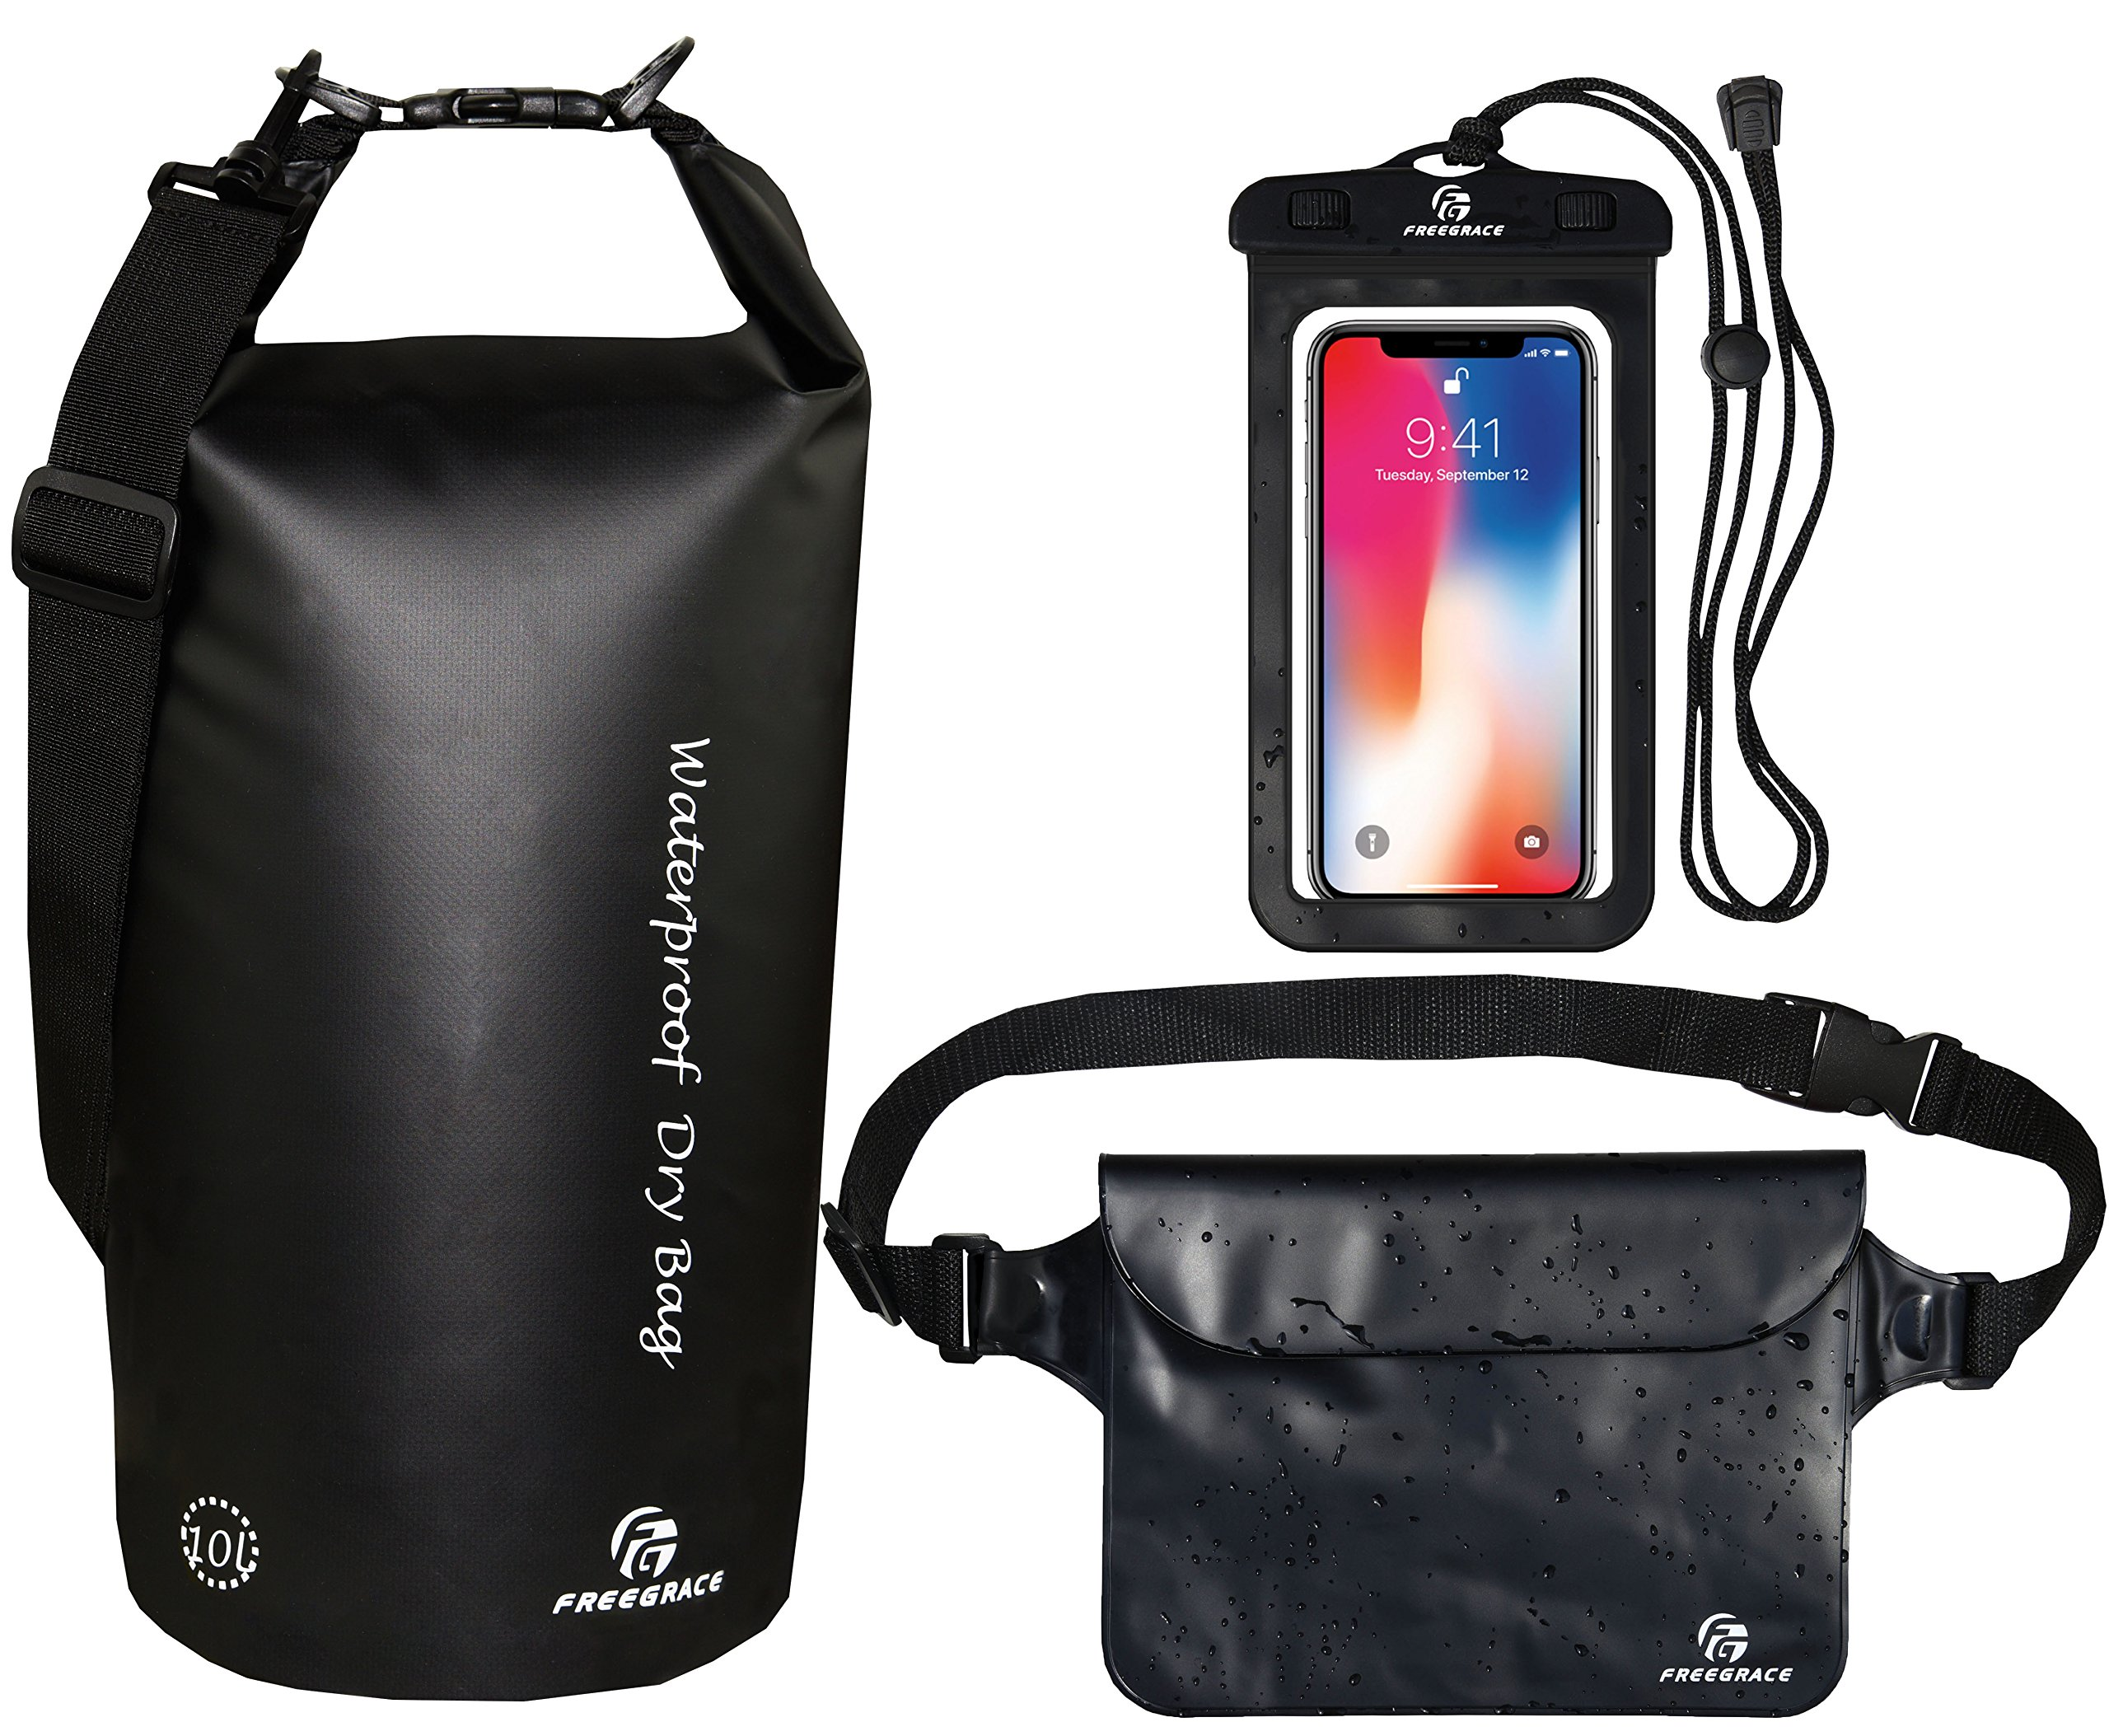 Freegrace Waterproof Dry Bags Set of 3 Dry Bag with 2 Zip Lock Seals & Detachable Shoulder Strap, Waist Pouch & Phone Case - Can Be Submerged Into Water - for Swimming (Black, 10L) by Freegrace